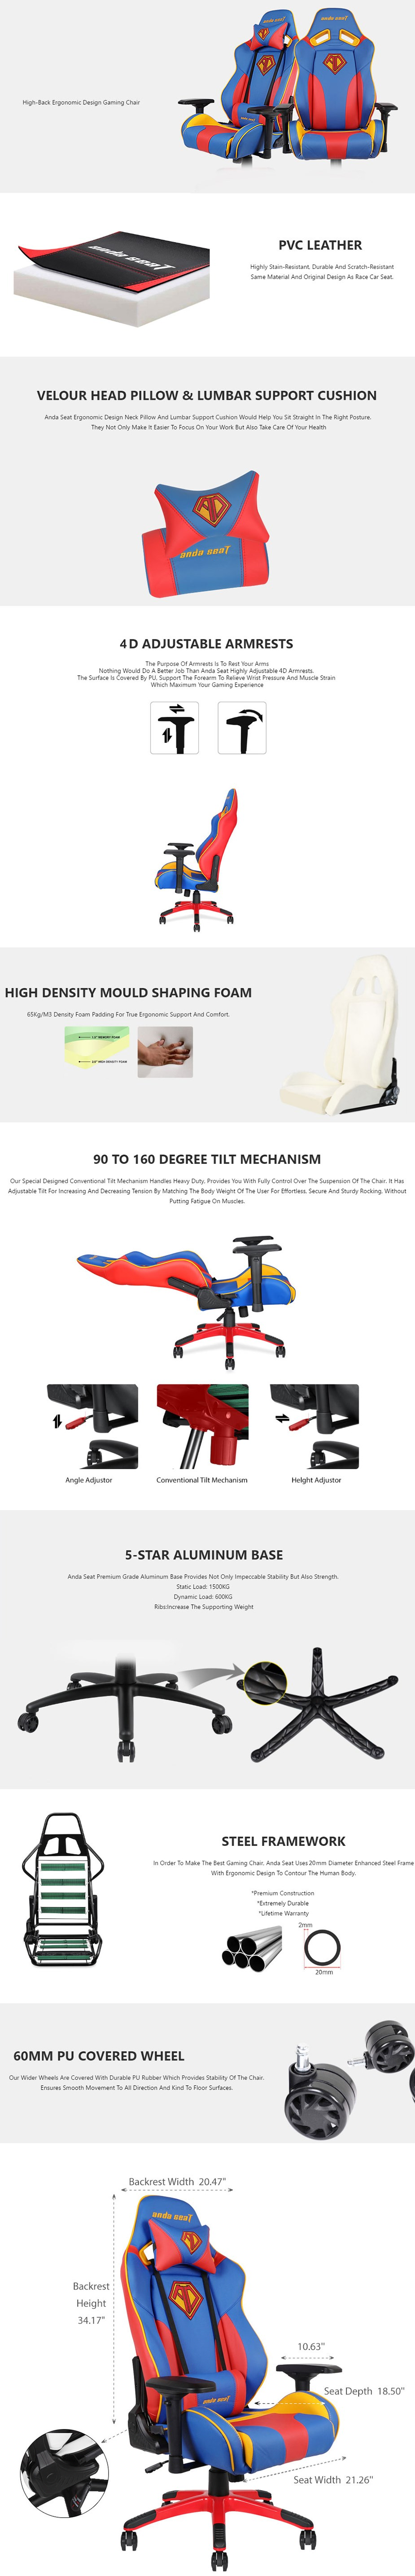 Anda Seat AD7-09 Gaming Chair - Special Edition - Desktop Overview 1